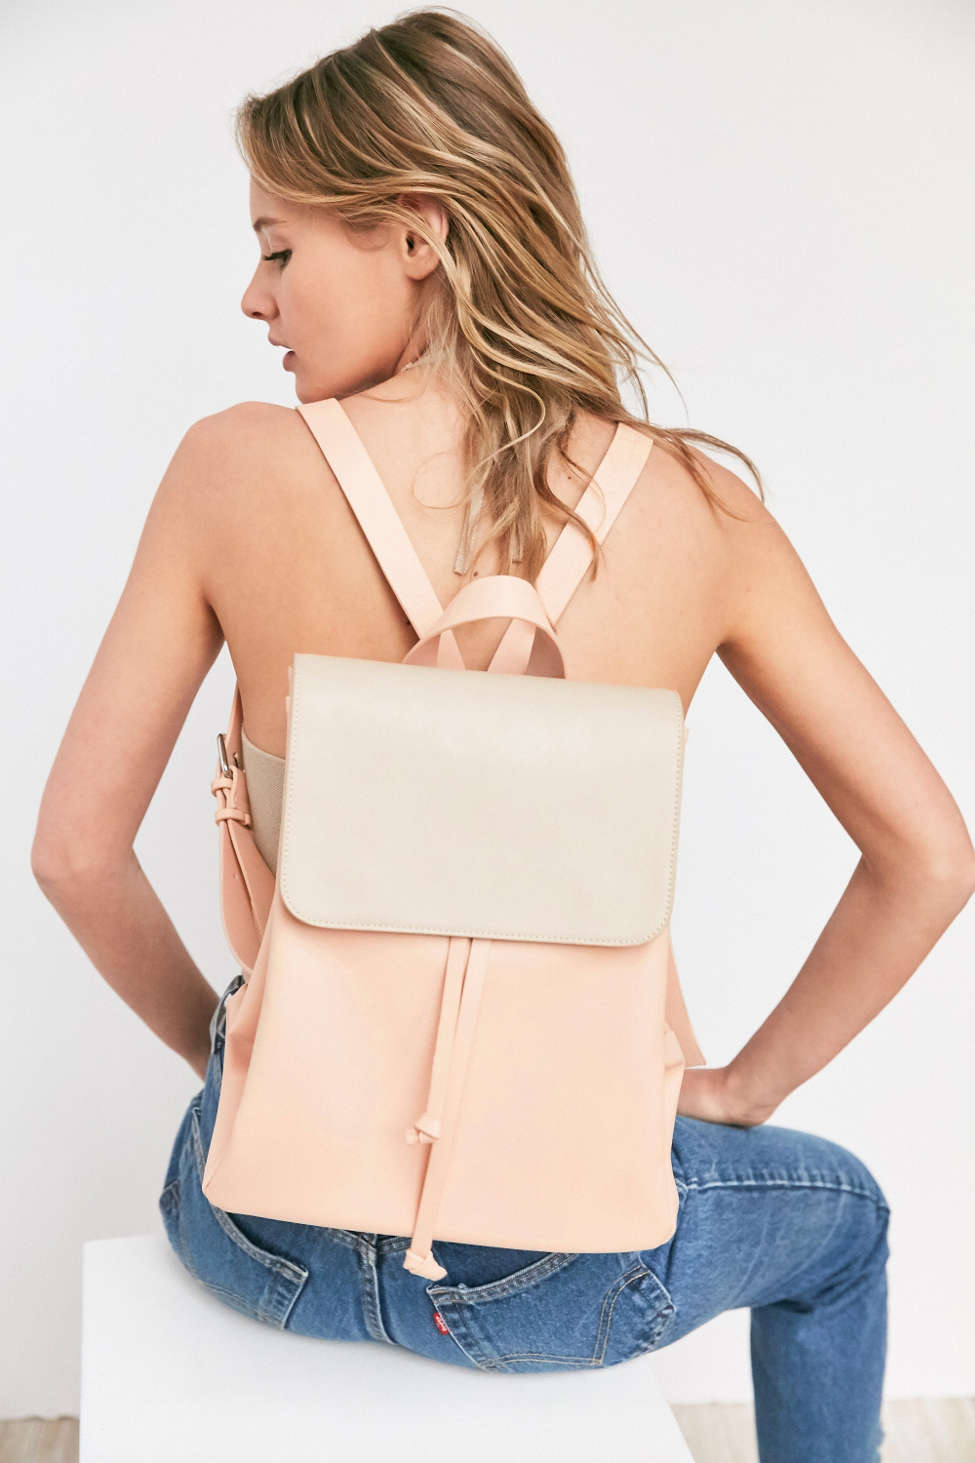 http://www.urbanoutfitters.com/urban/catalog/productdetail.jsp?id=38654976&category=W_ACC_BAGS&color=066